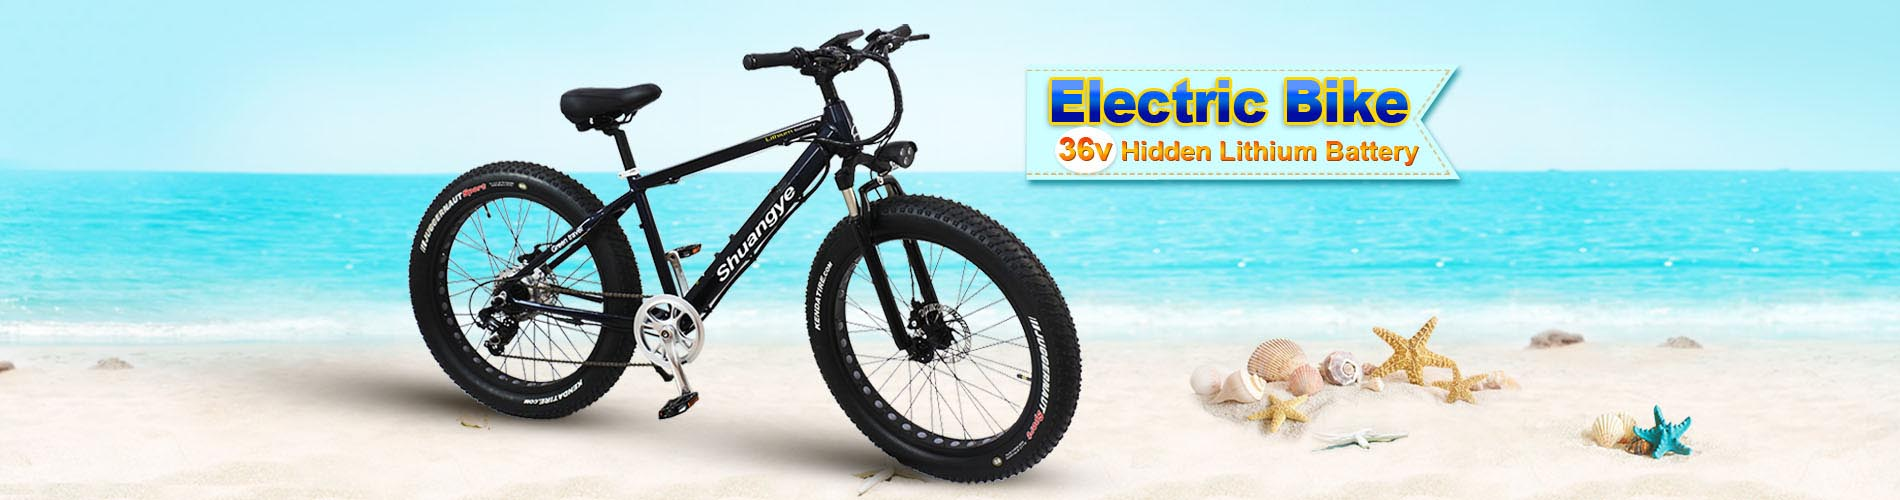 Magnesium alloy wheel electric bike mountain for sale